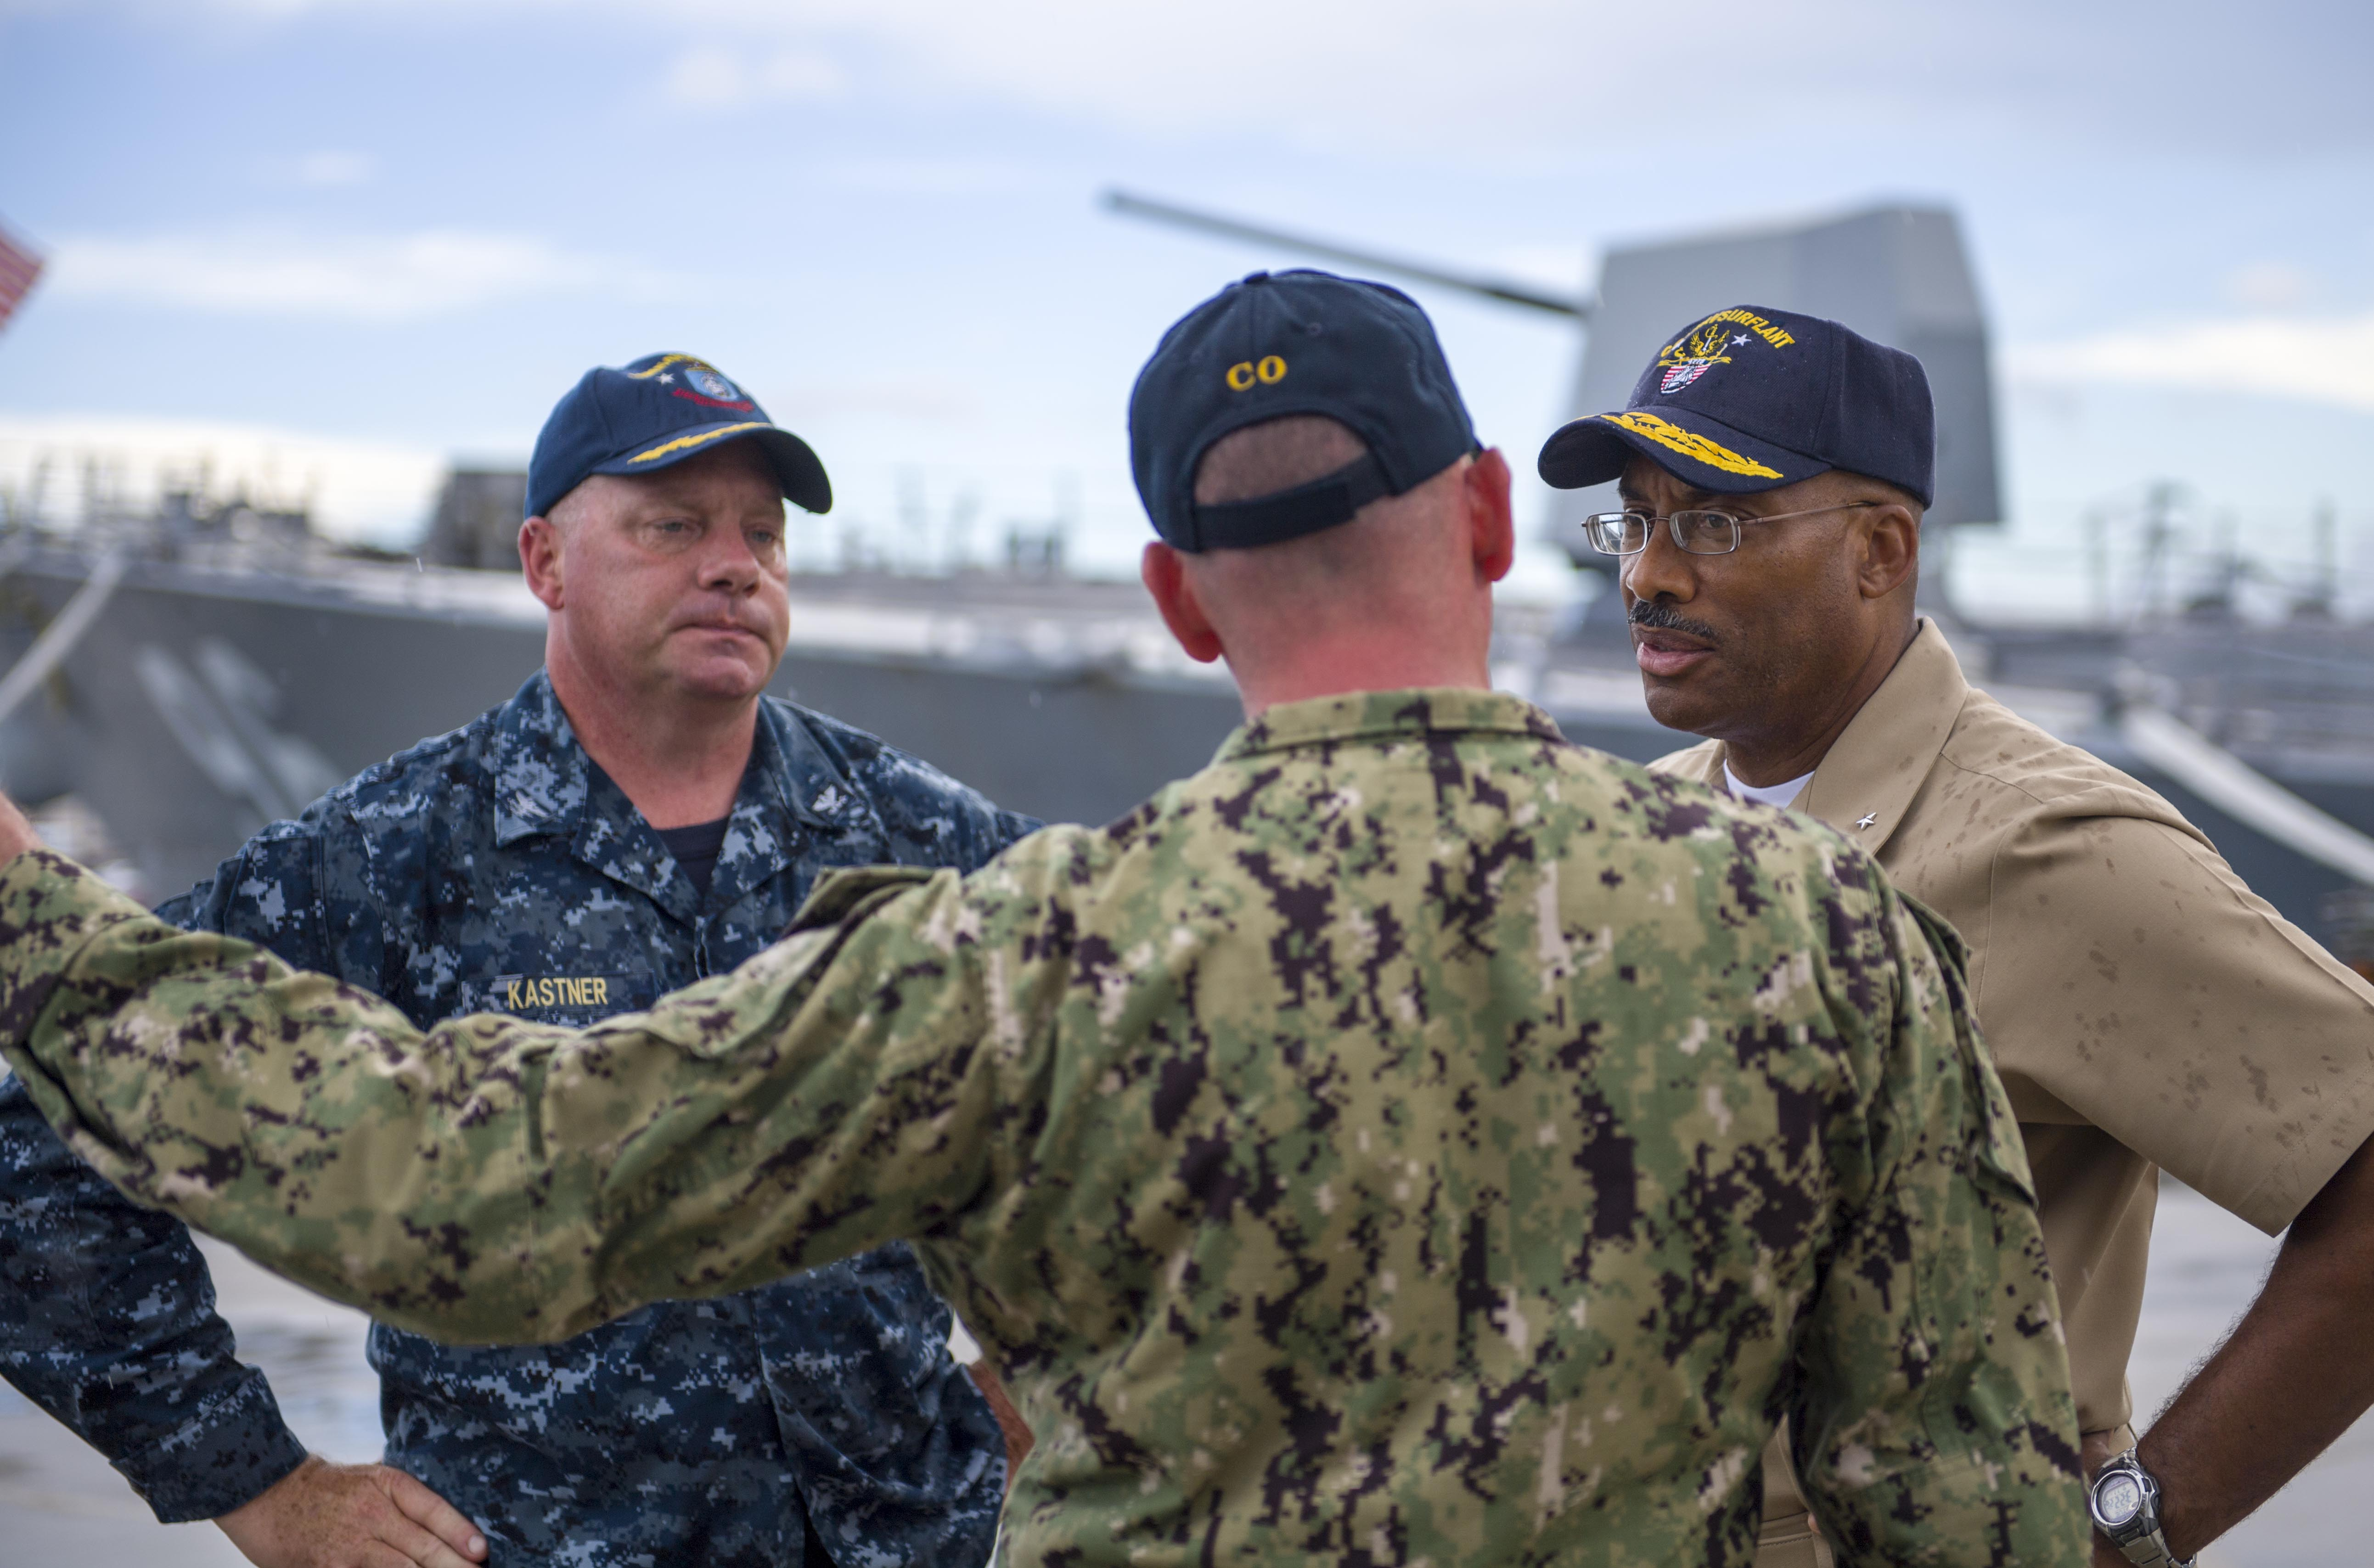 ac412e03425f15 Corey Keniston, center, commanding officer of the guided-missile cruiser  USS Gettysburg (CG 64), while inspecting heavy-weather ...